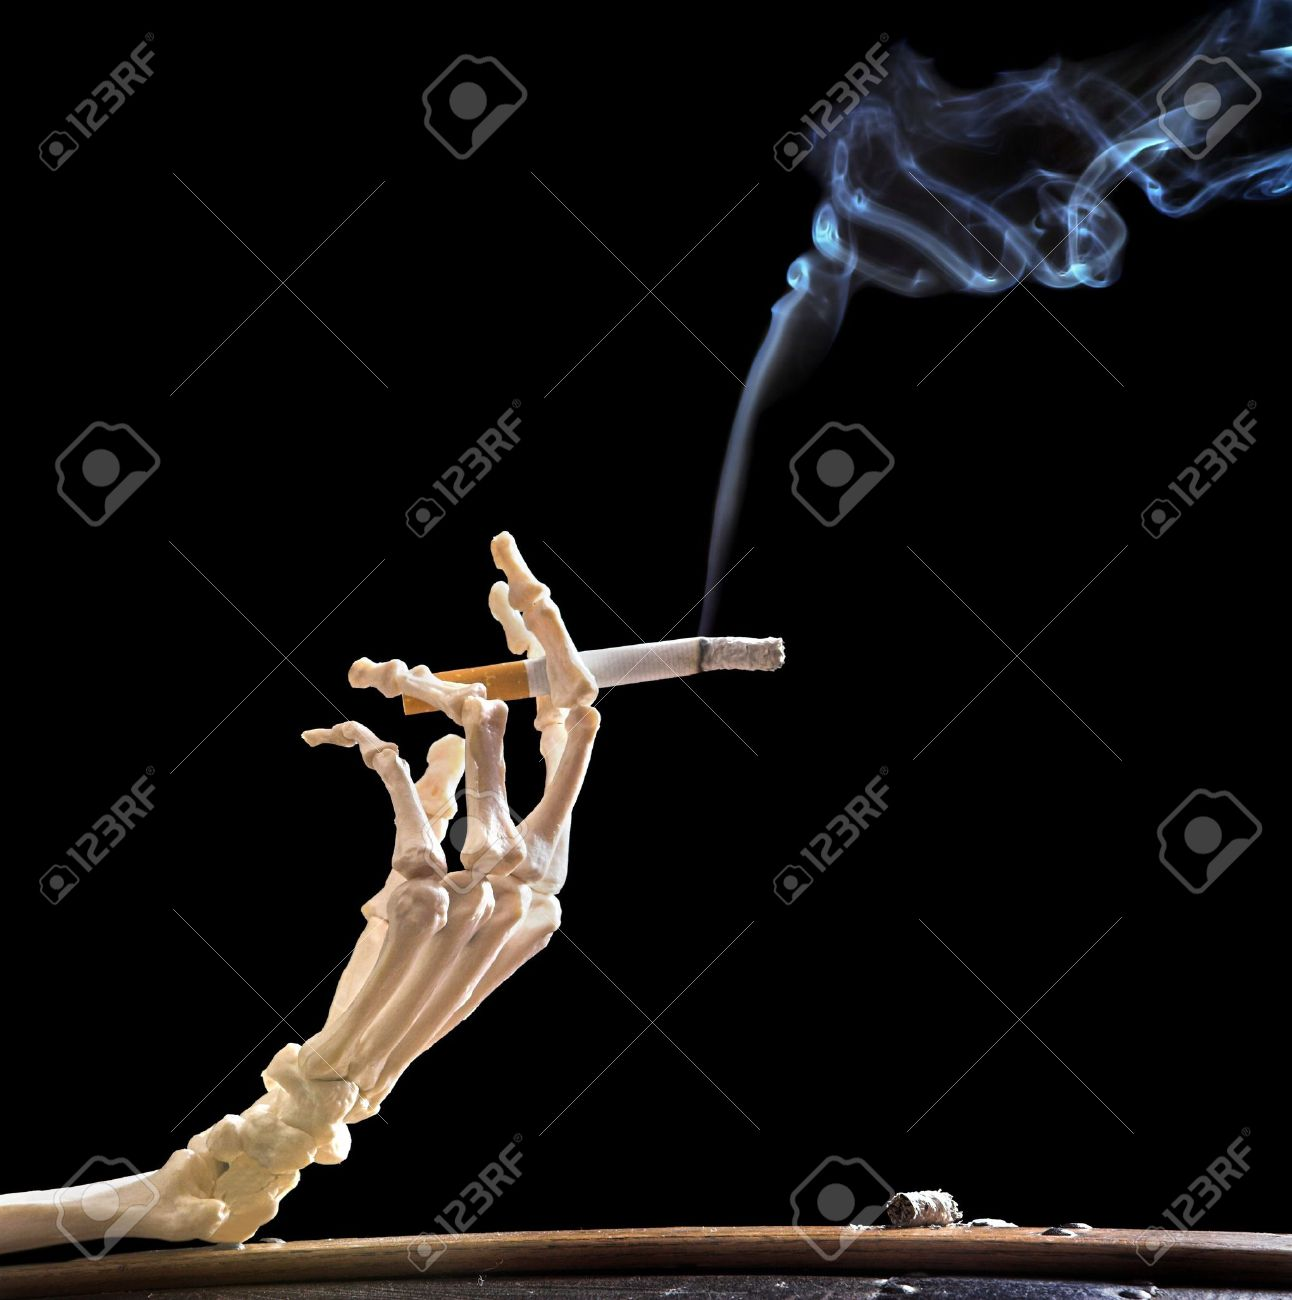 Hand of death holding a smoking cigarette Stock Photo - 3701360